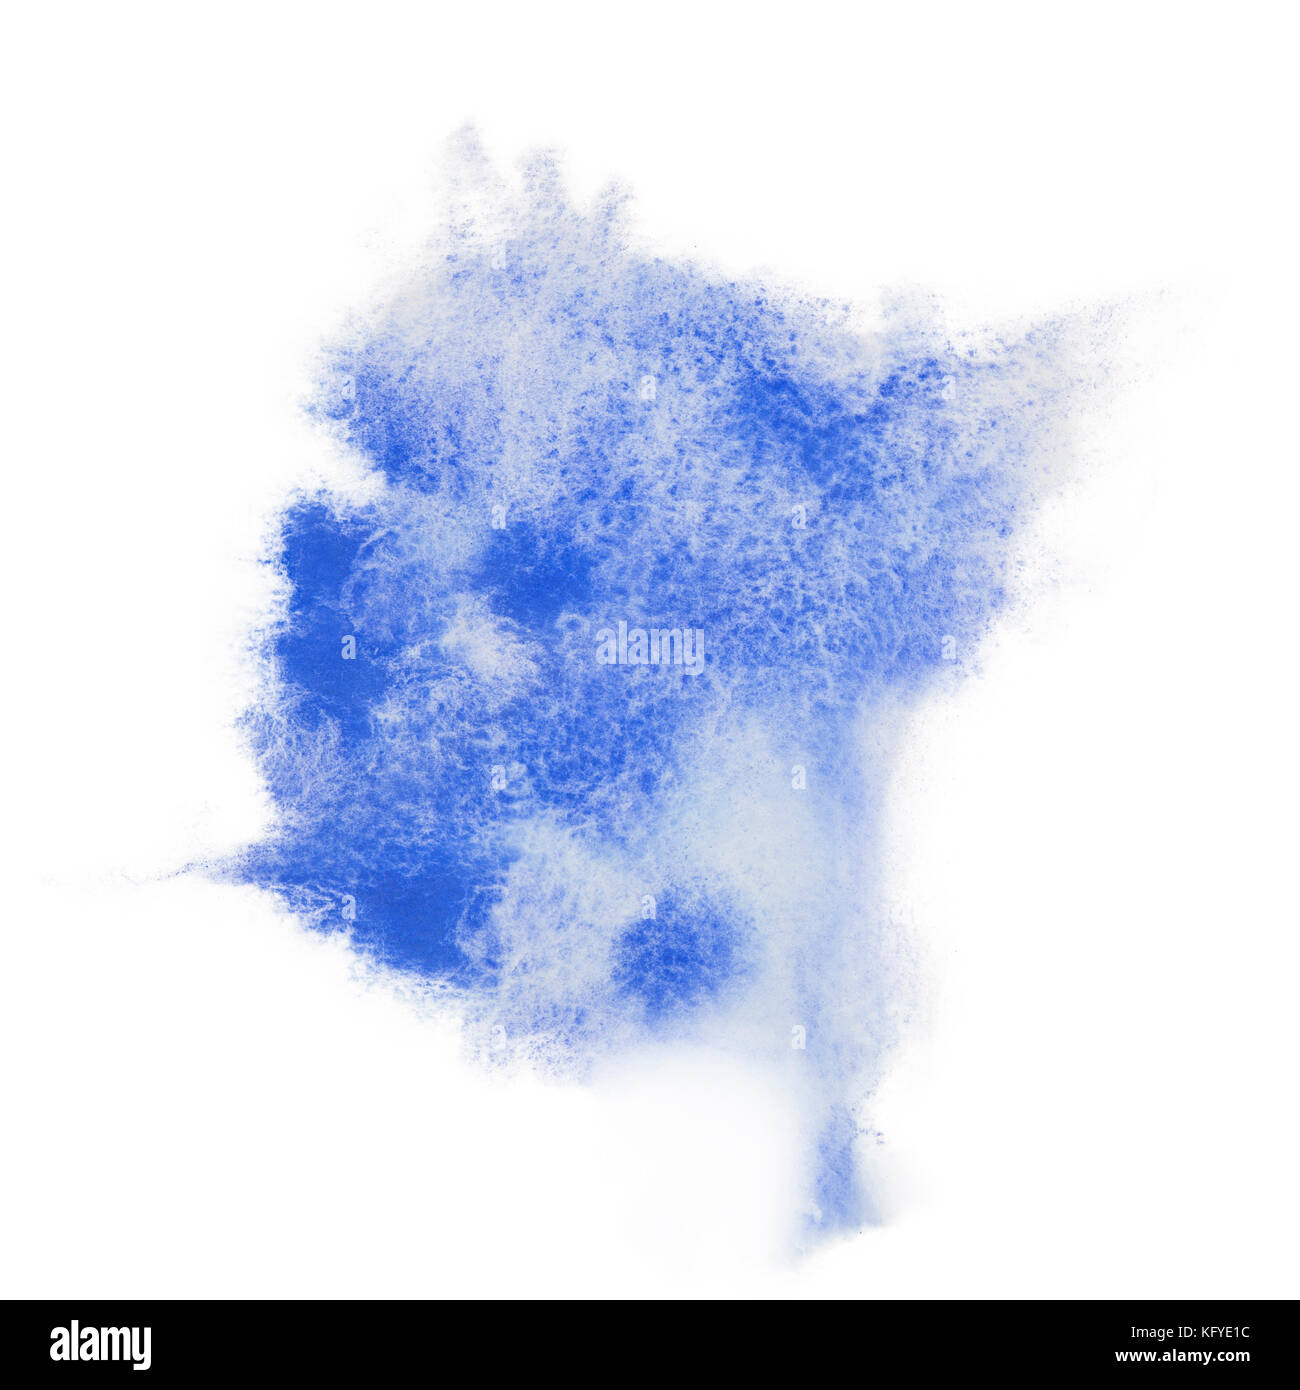 Color, blue splash watercolor hand painted isolated on white background, artistic decoration or background - Stock Image